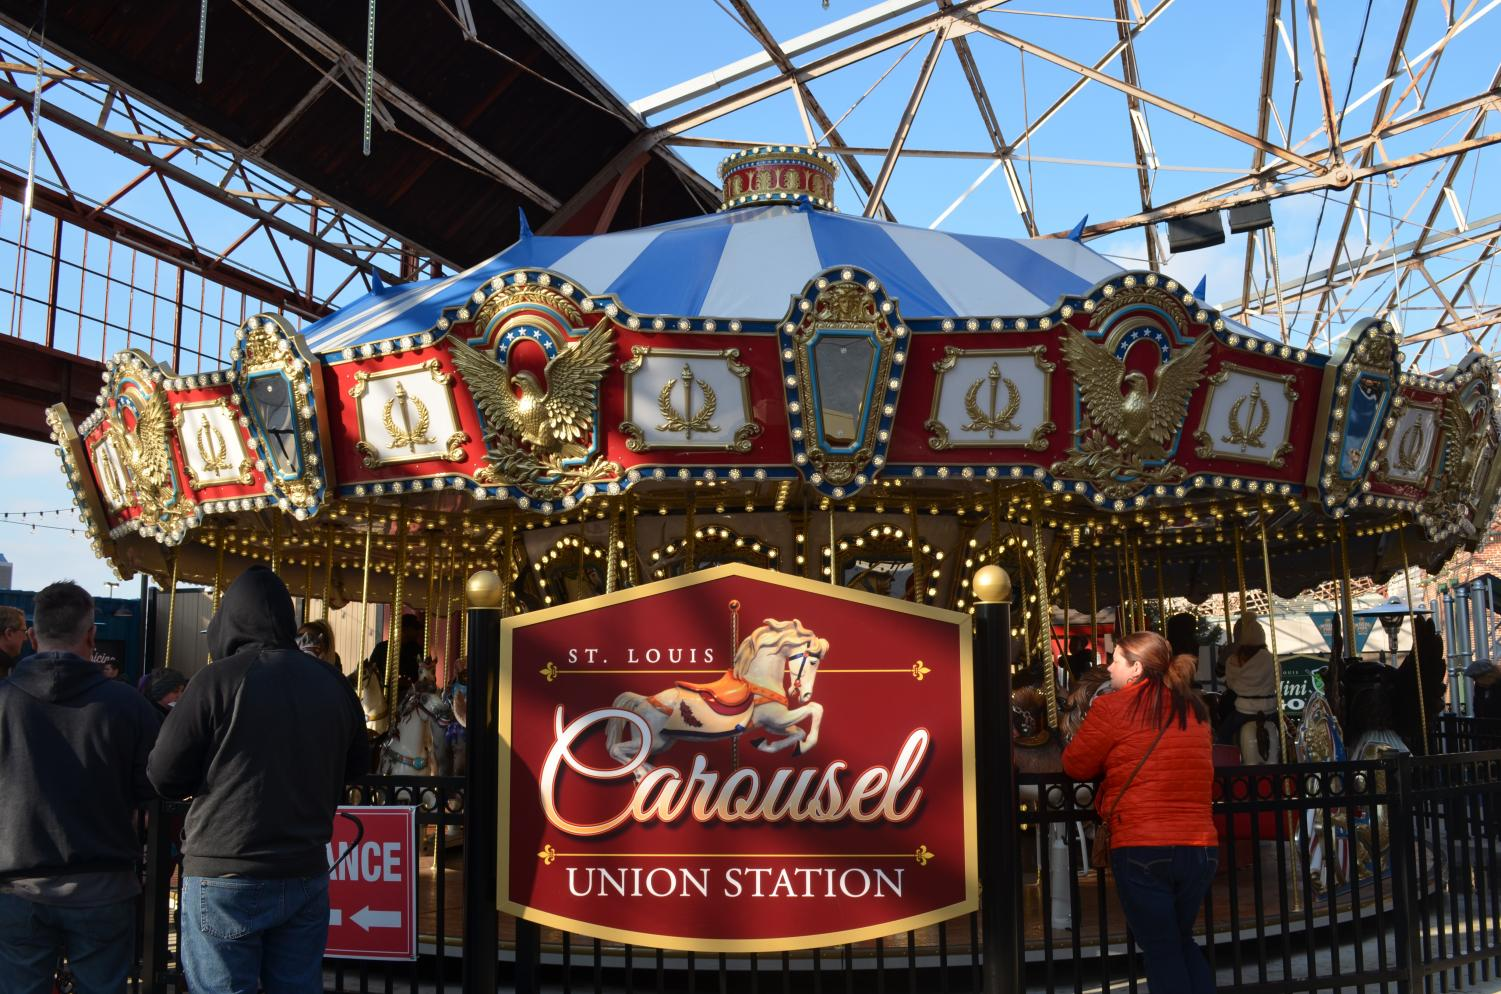 Children+enjoy+the+ride+on+the+St.+Louis+Carousel+Union+Station.+The+Carousel+is+located+beneath+the+historic+Union+Station+train+shed+and+the+admission+for+the+ticket+is+%245.